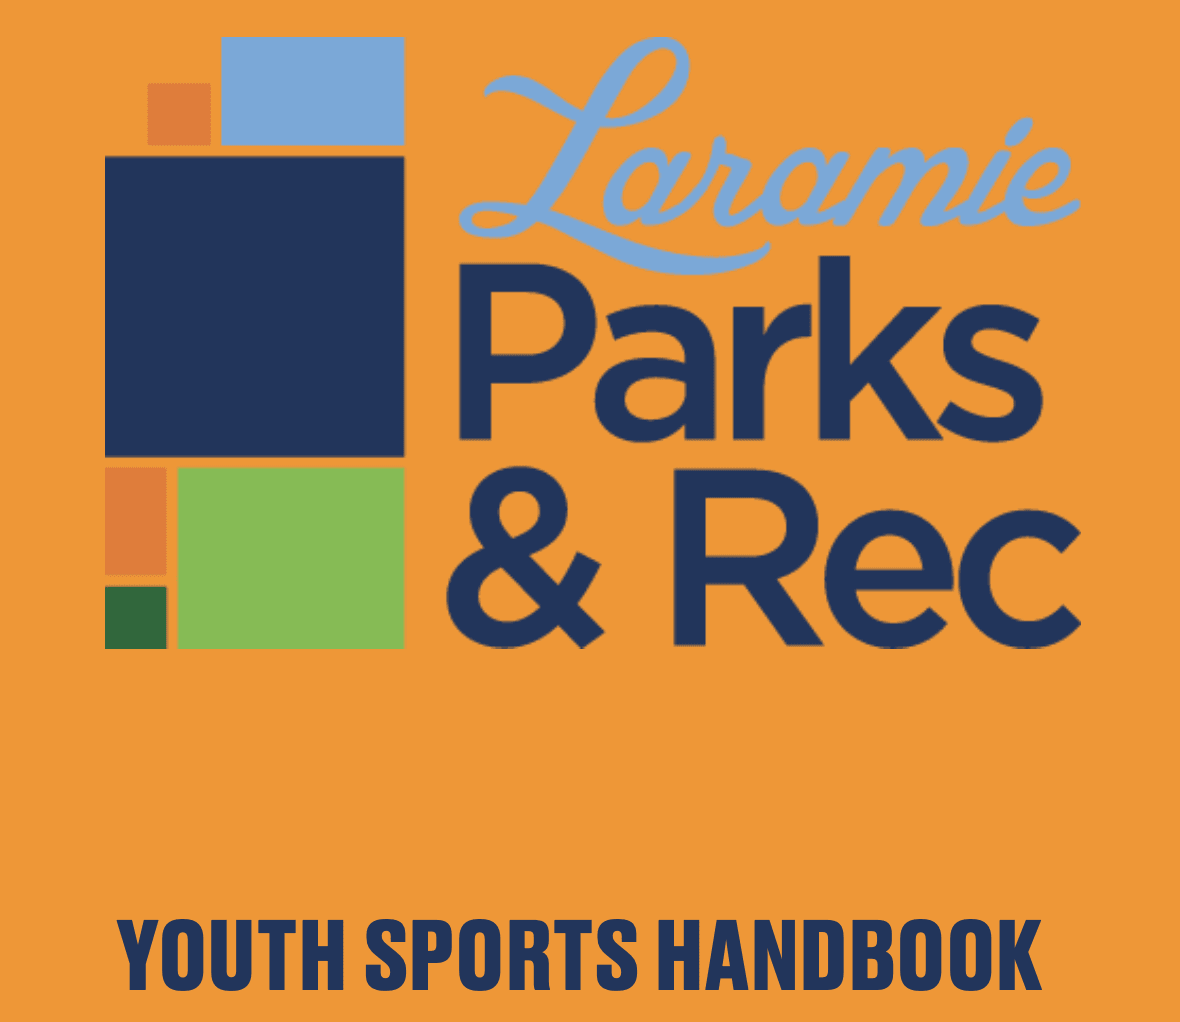 Youth Sports Handbook Opens in new window